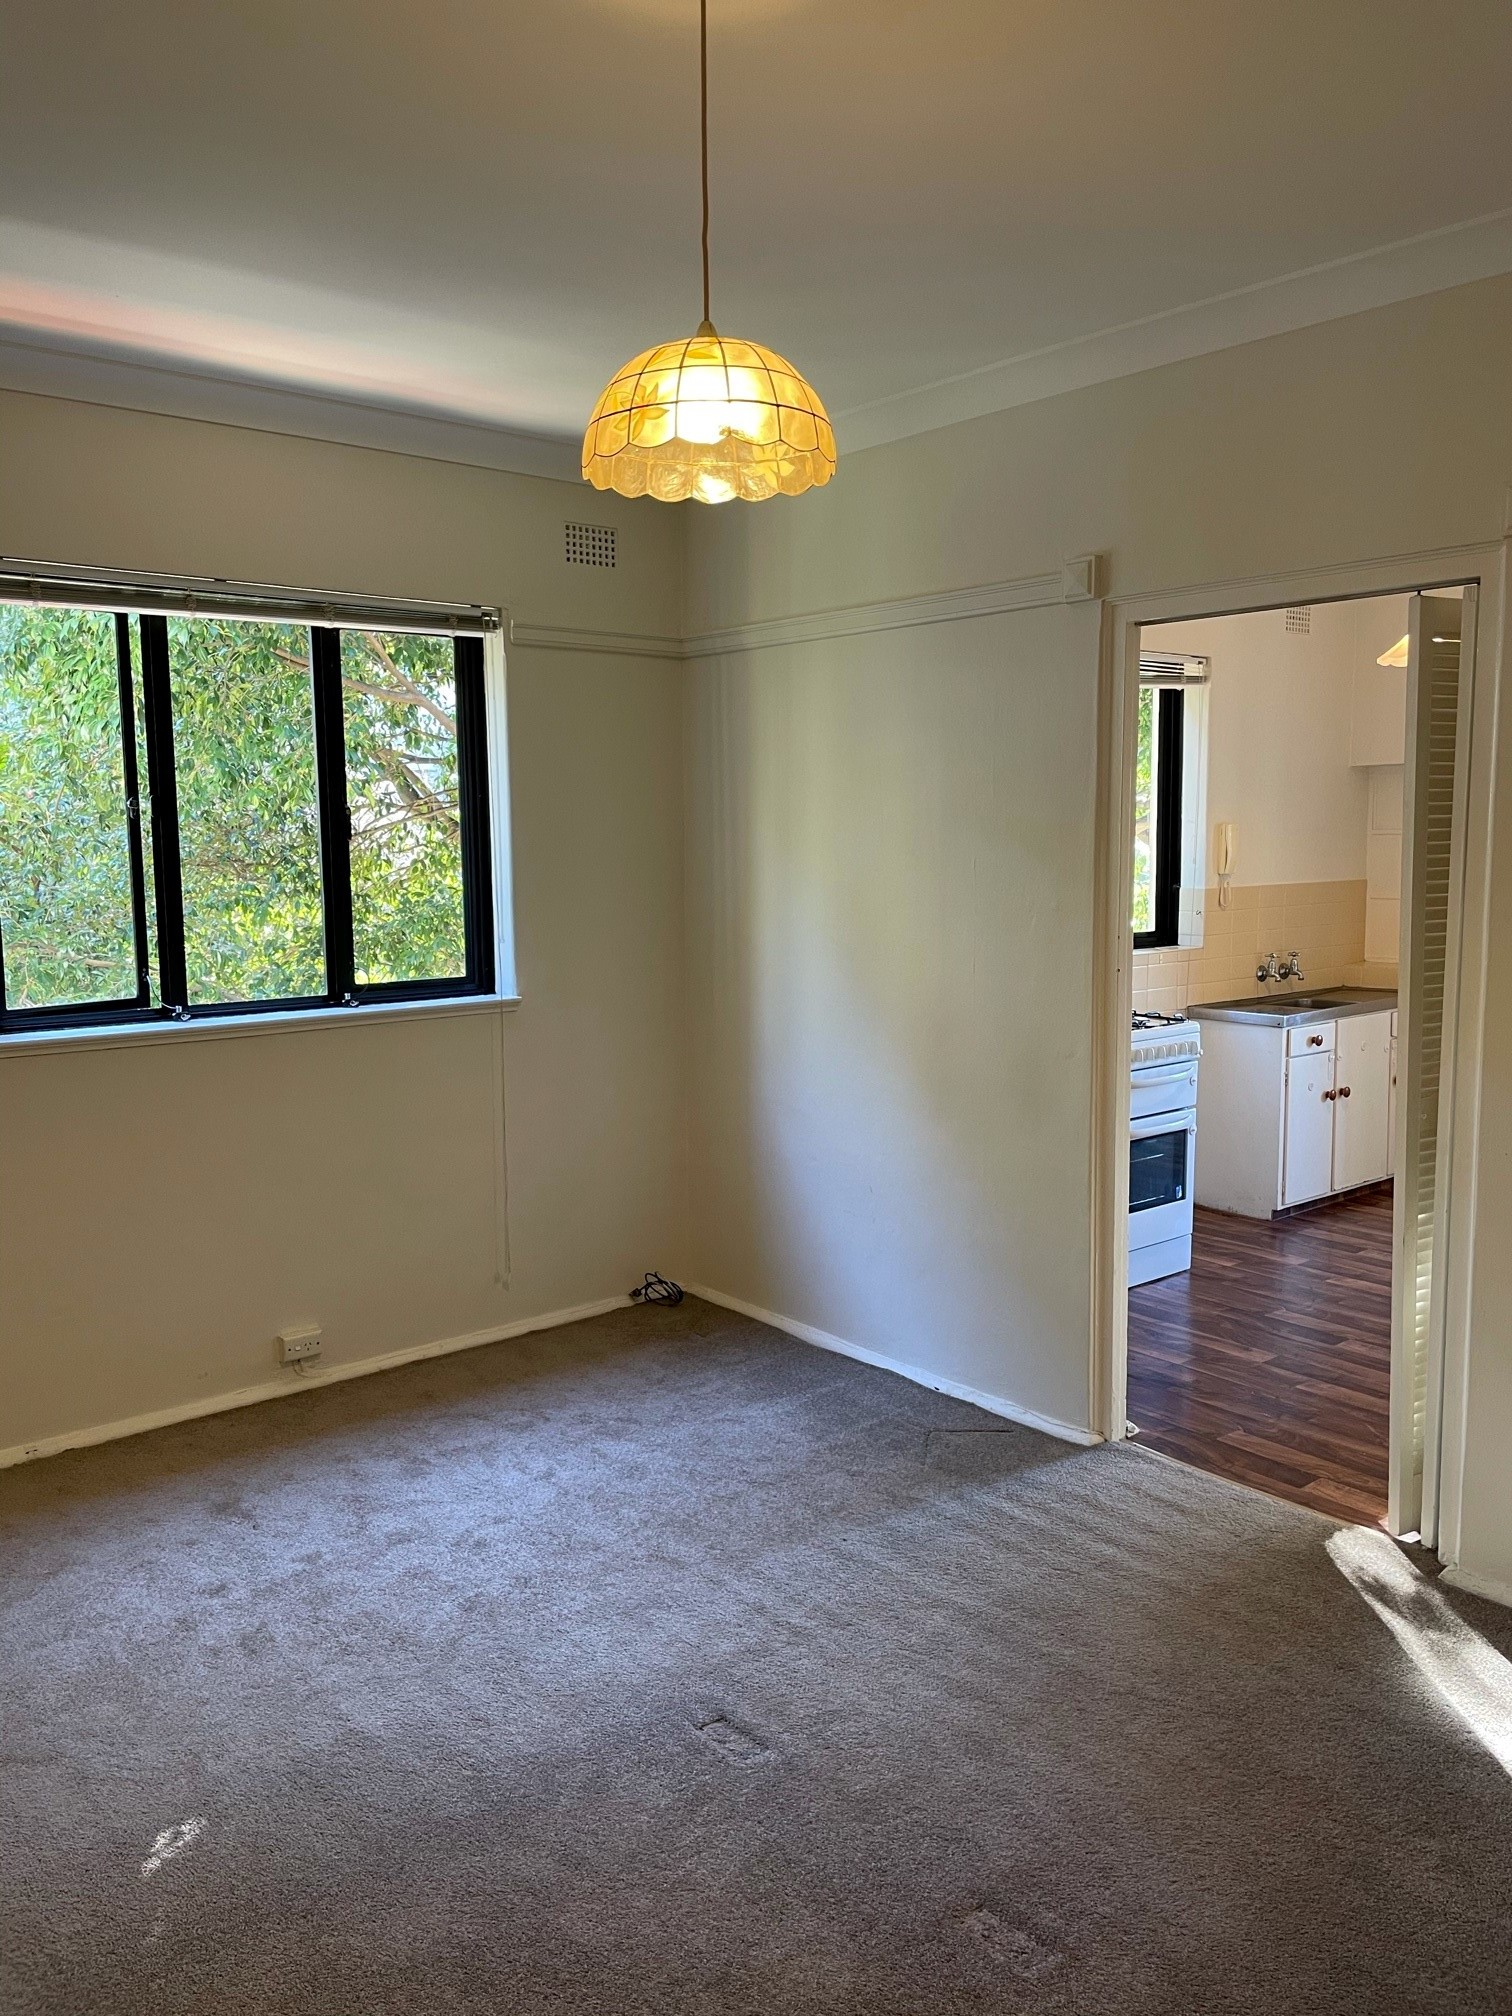 29/29 East Crescent Street MCMAHONS POINT